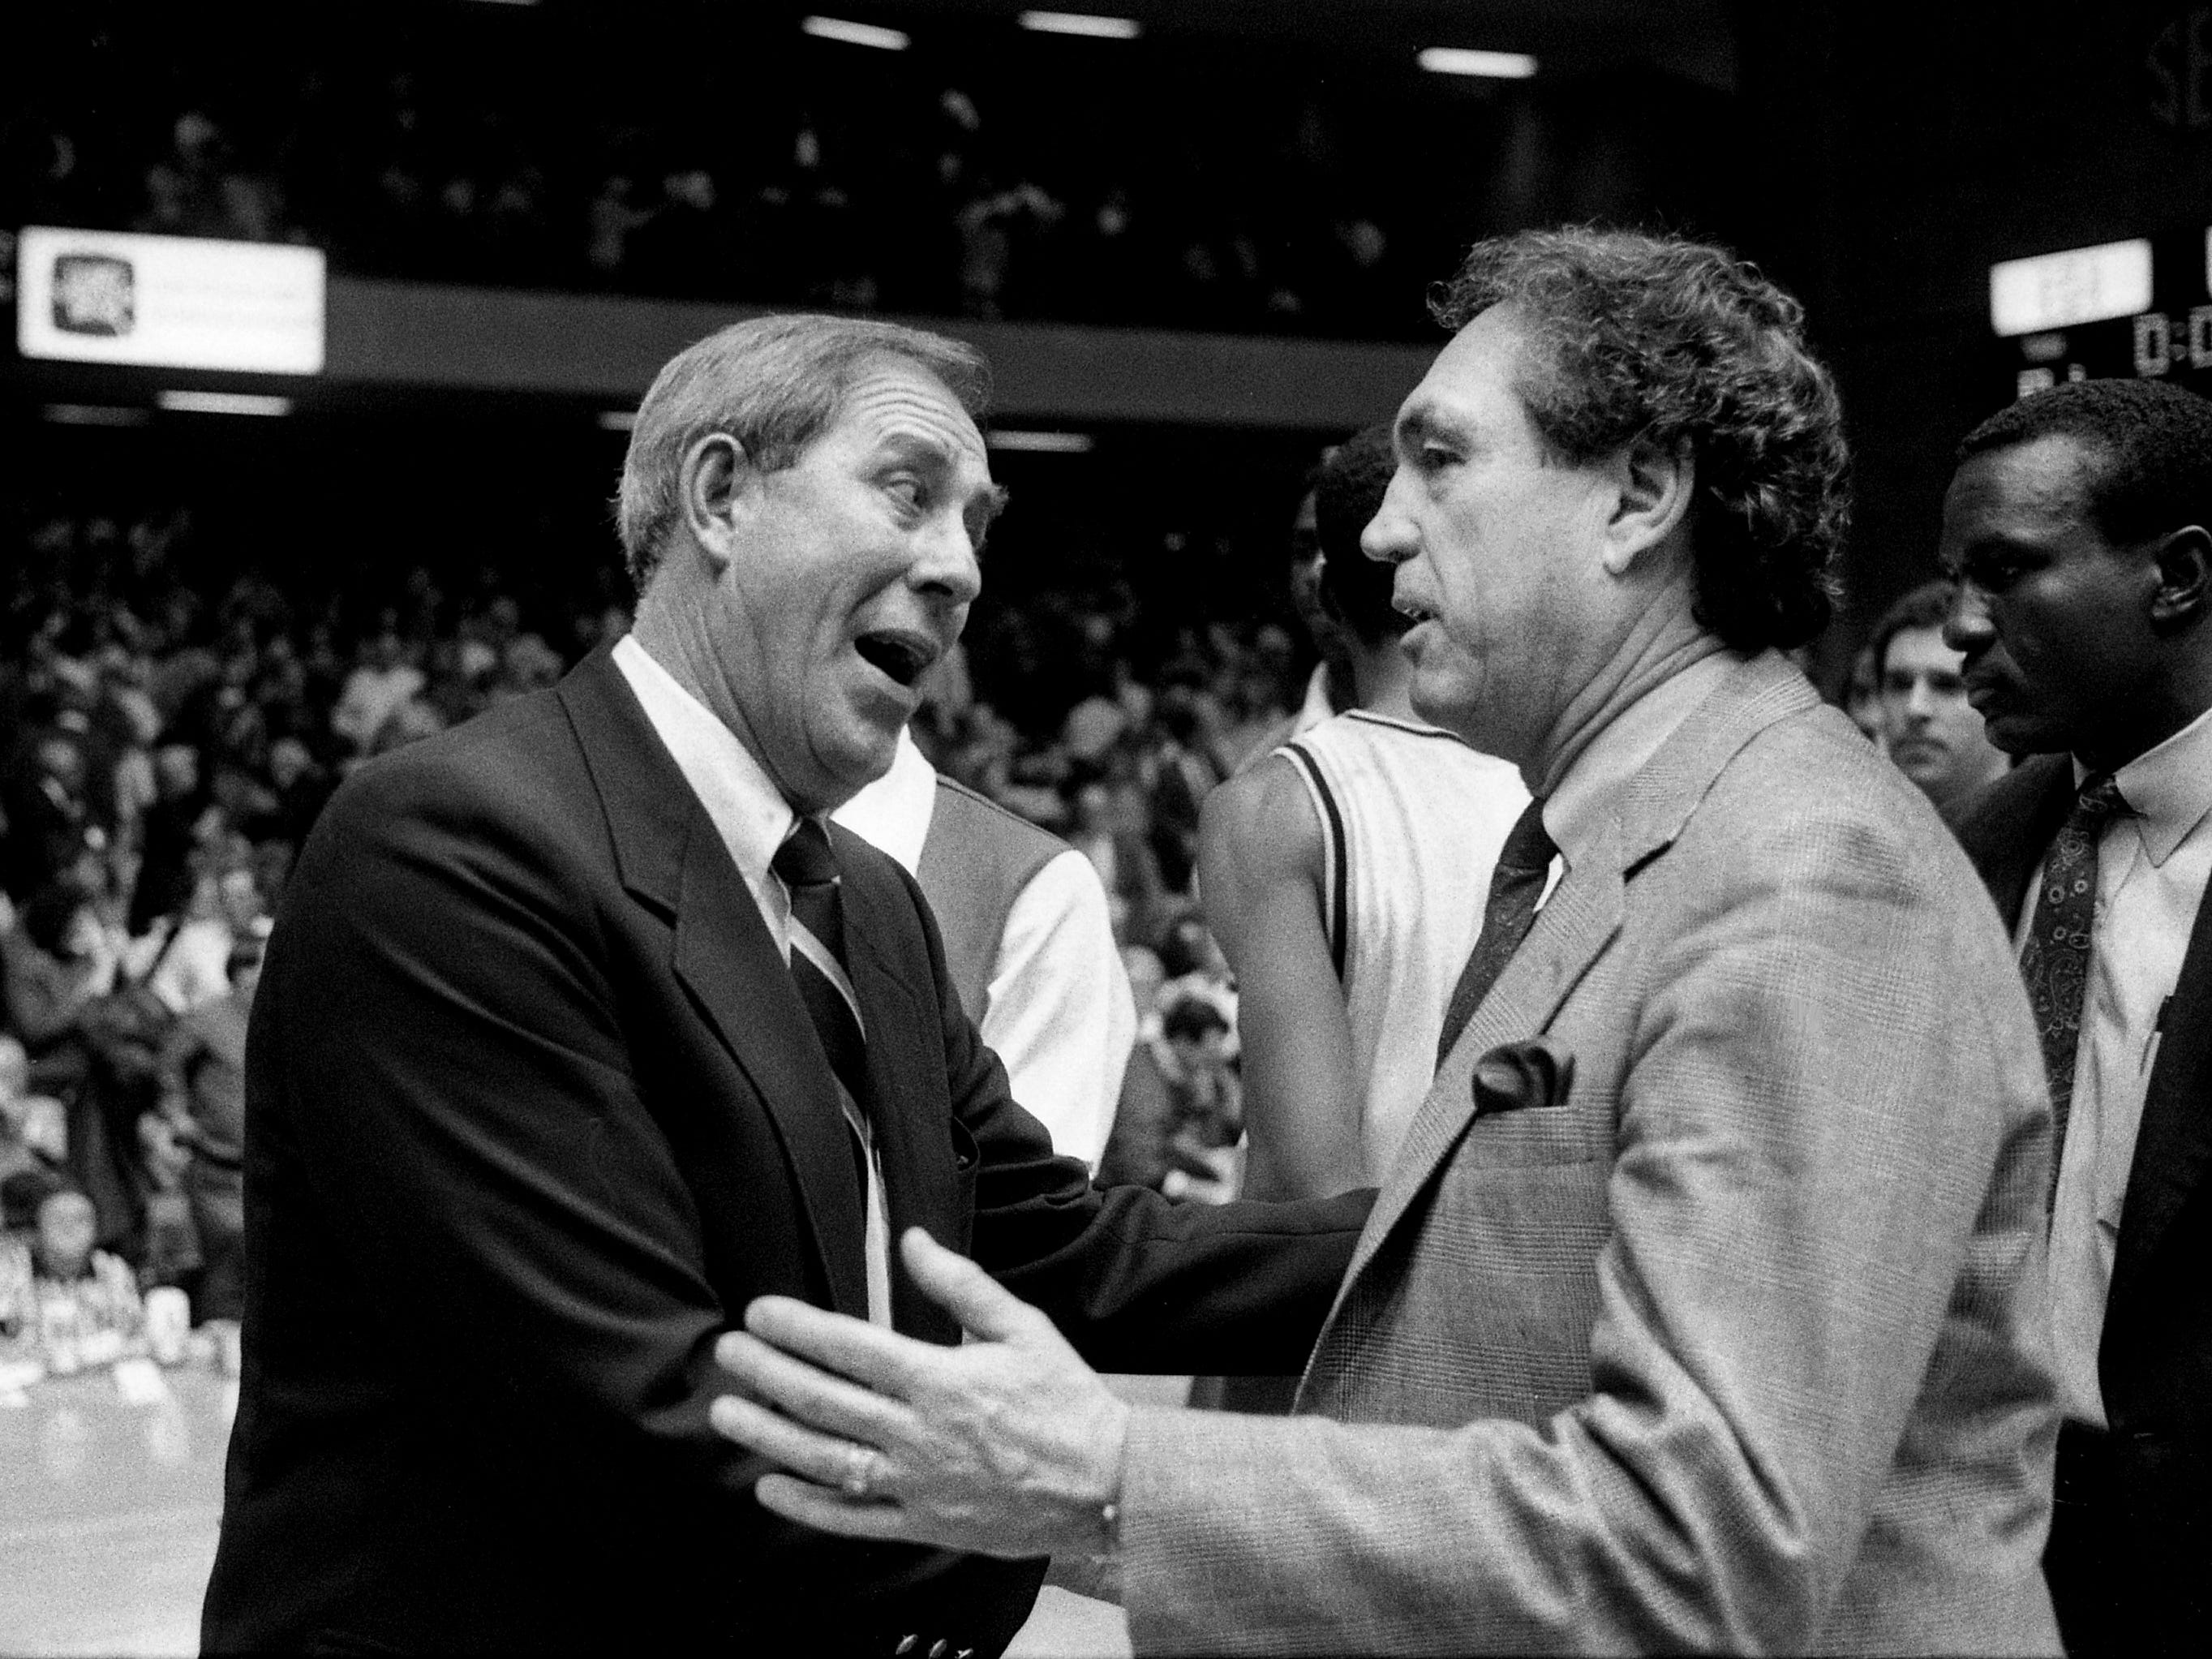 Vanderbilt head coach C.M. Newton, left, who recently announced he will become the athletic director for Kentucky, chats with Kentucky head coach Eddie Sutton after the Commodores' 81-51 victory over Kentucky before 15,646 at Memorial Gym on Feb. 8, 1989.